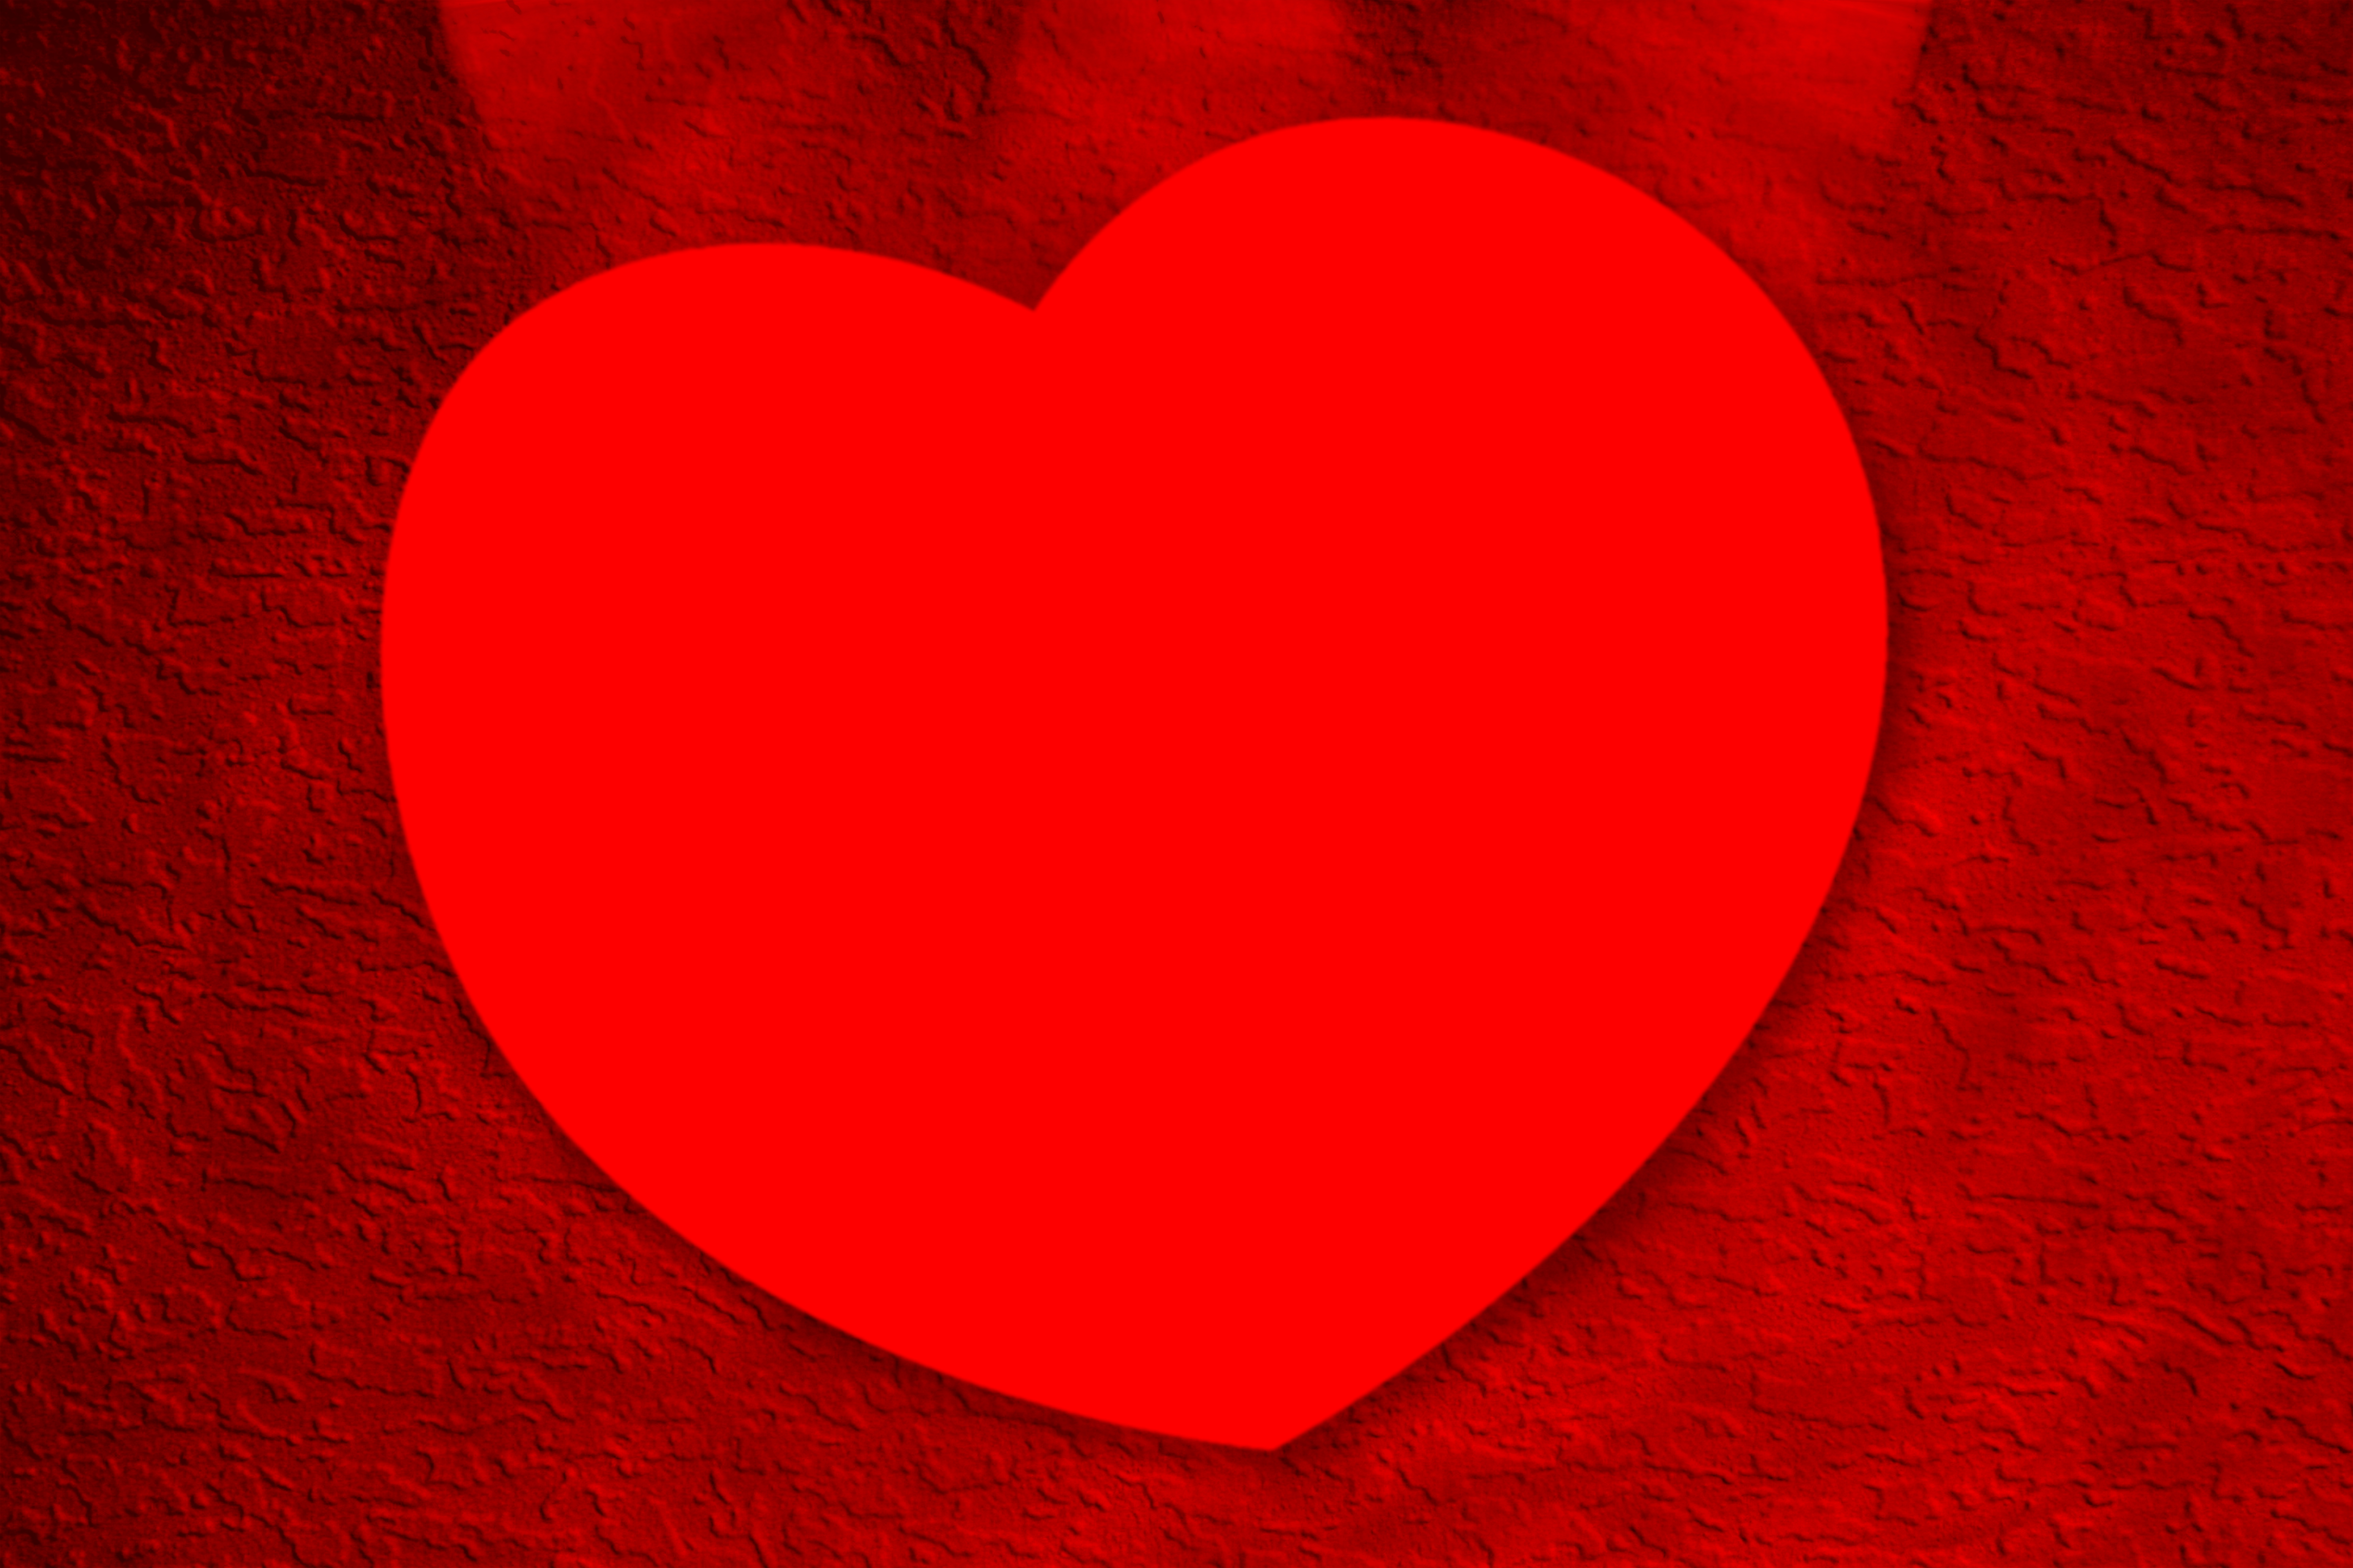 Red heart photo